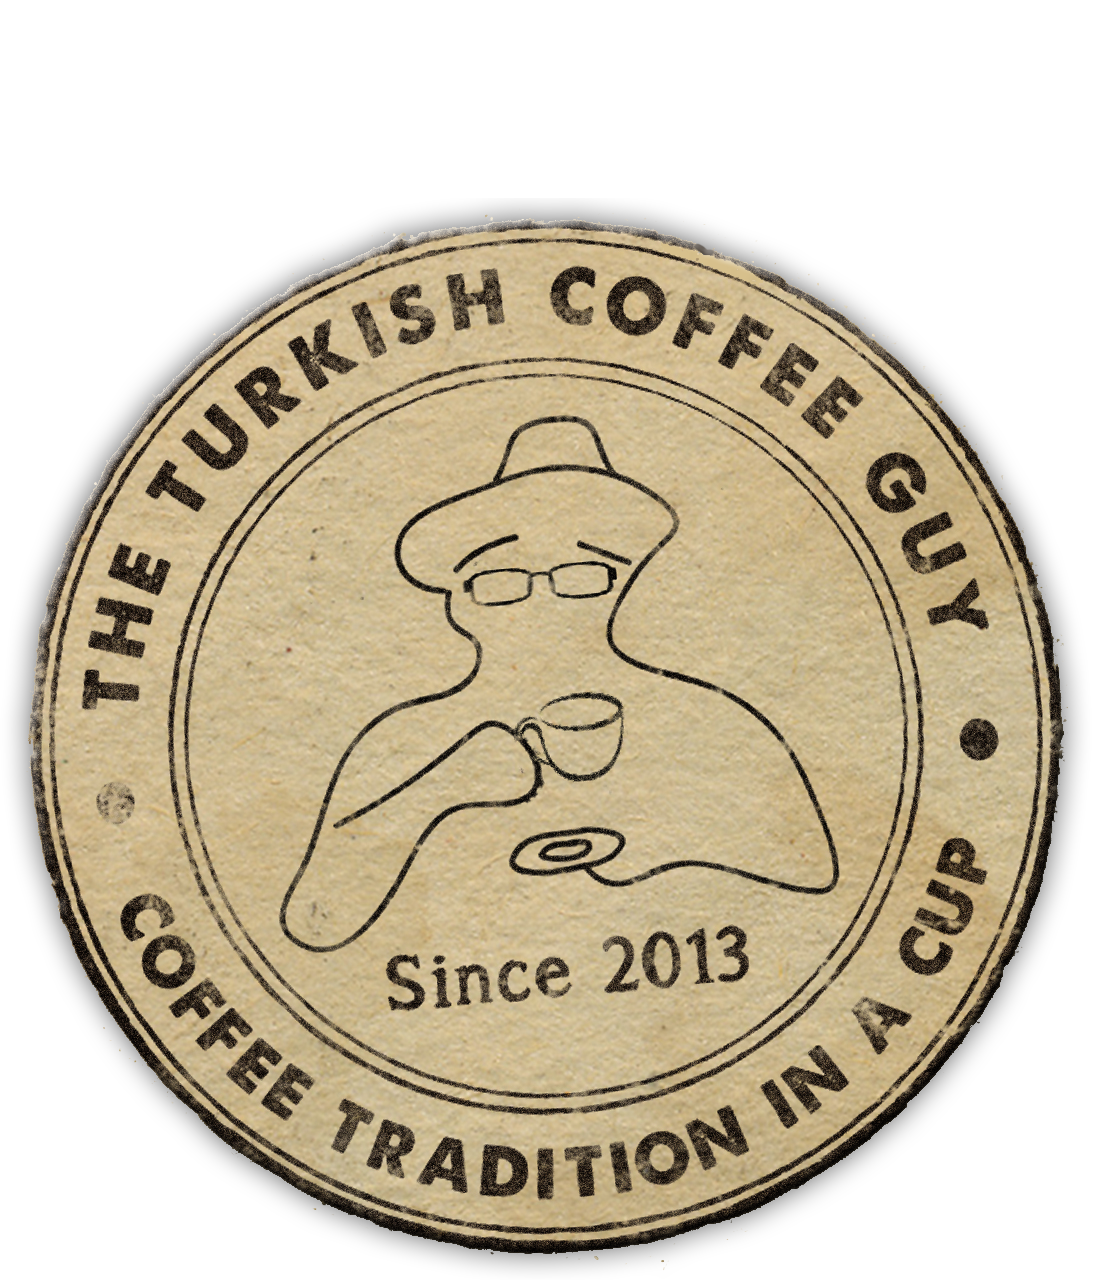 The Turkish Coffee Guy